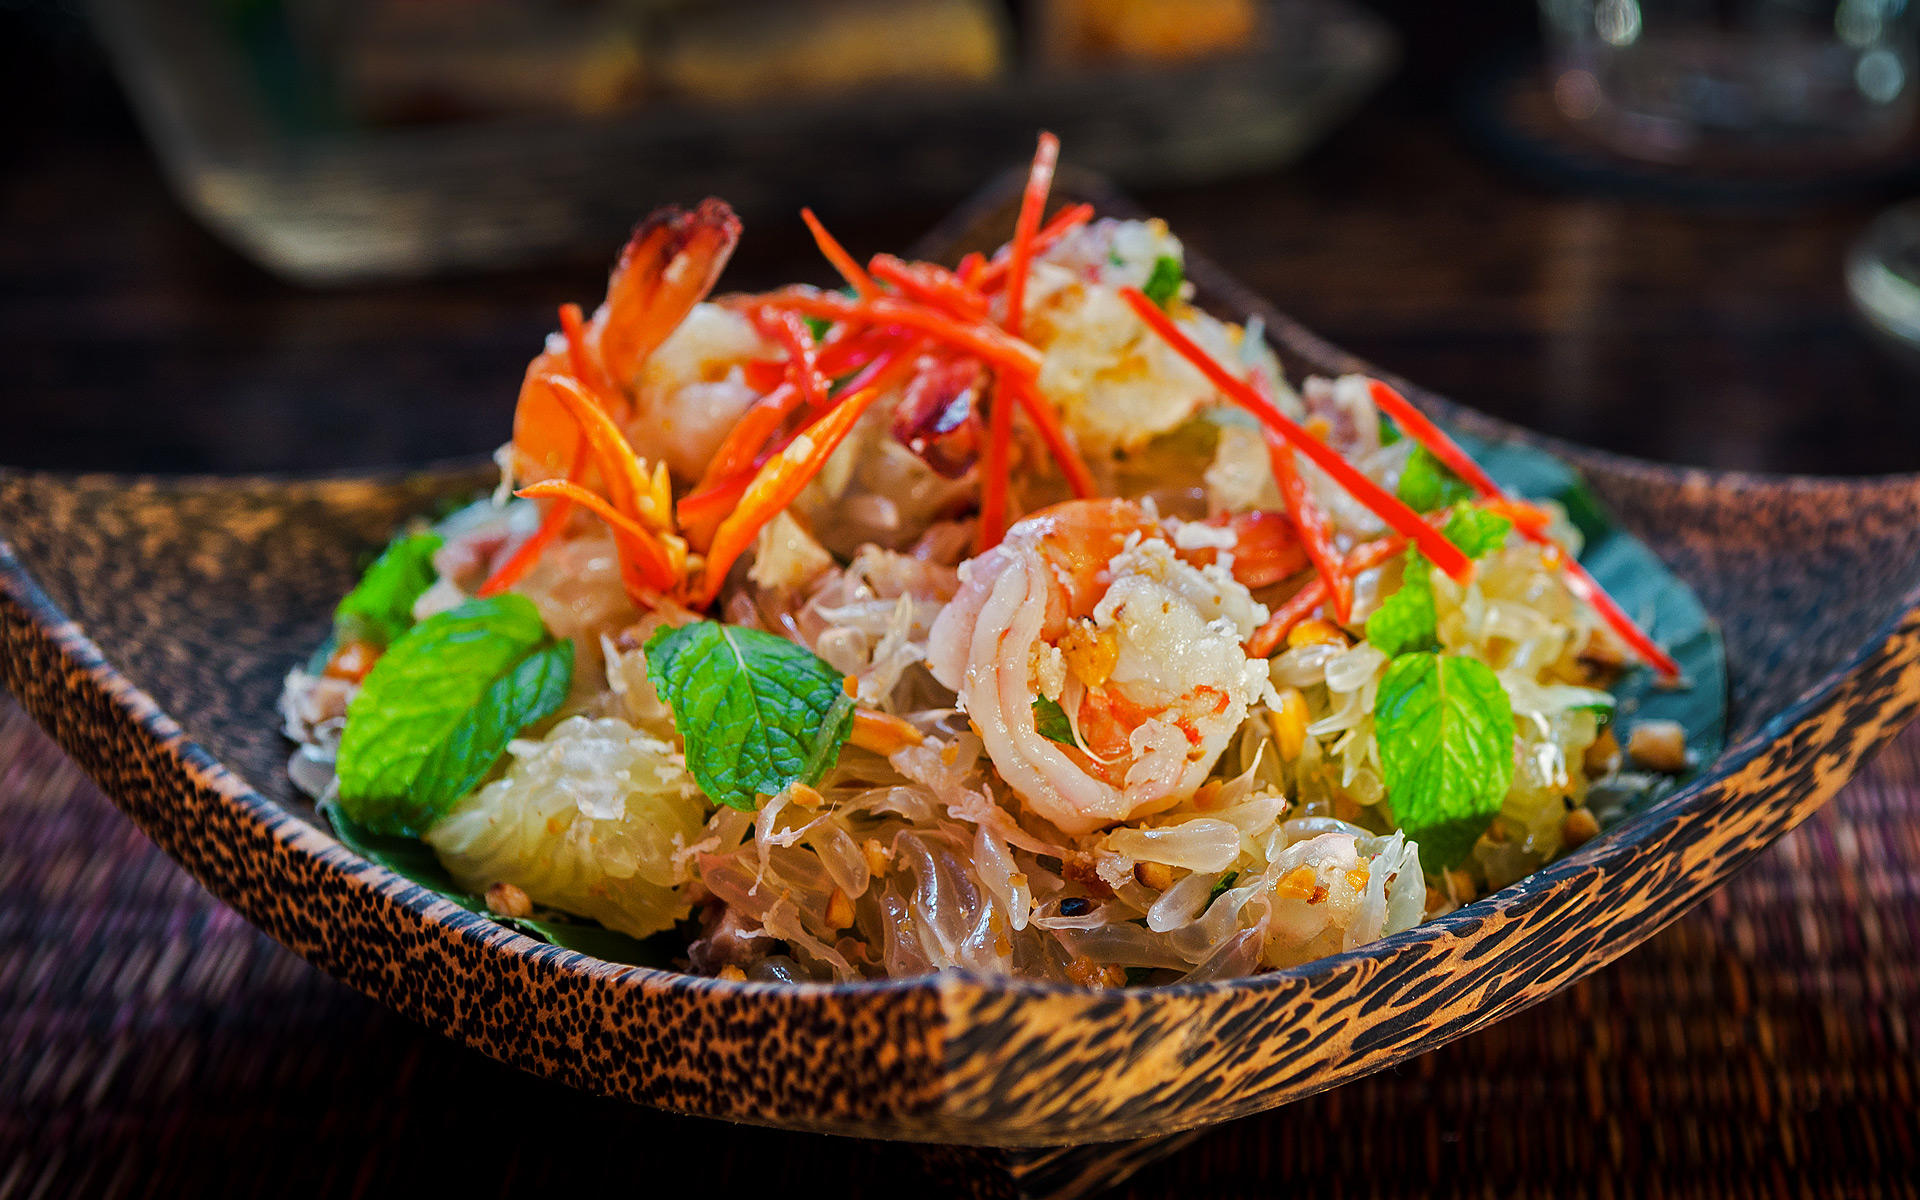 Pomelo Salad. The Sugar Palm Restaurant & Bar. Authentic Cambodian food by chef Kethana with locations in Phnom Penh & Siem Reap, Cambodia.